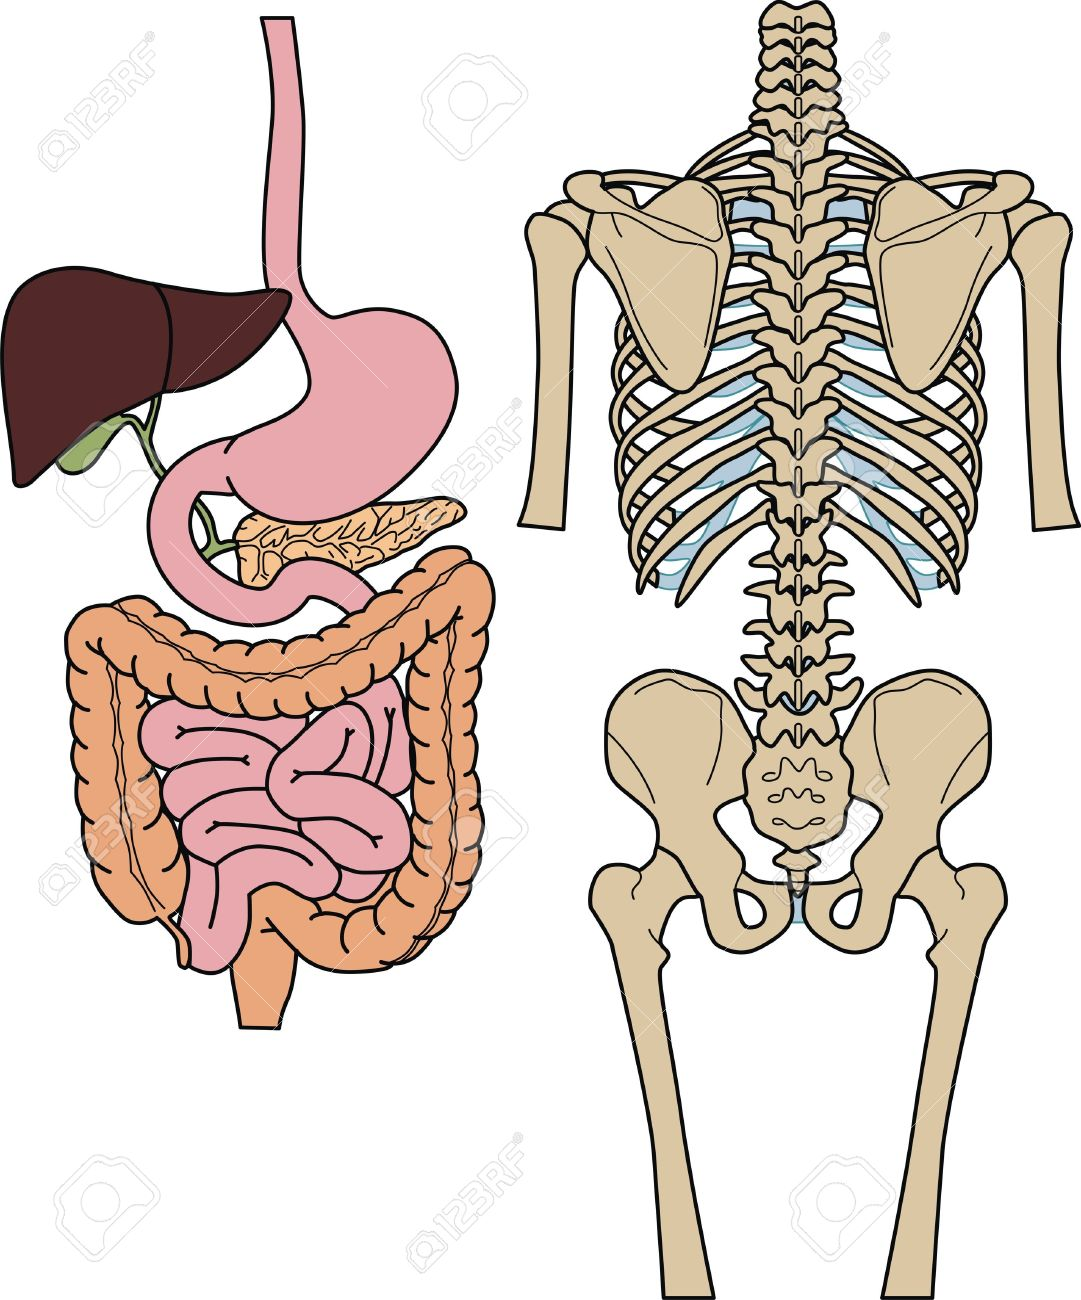 Internal of digestion and skeleton of the person Stock Vector - 10942643